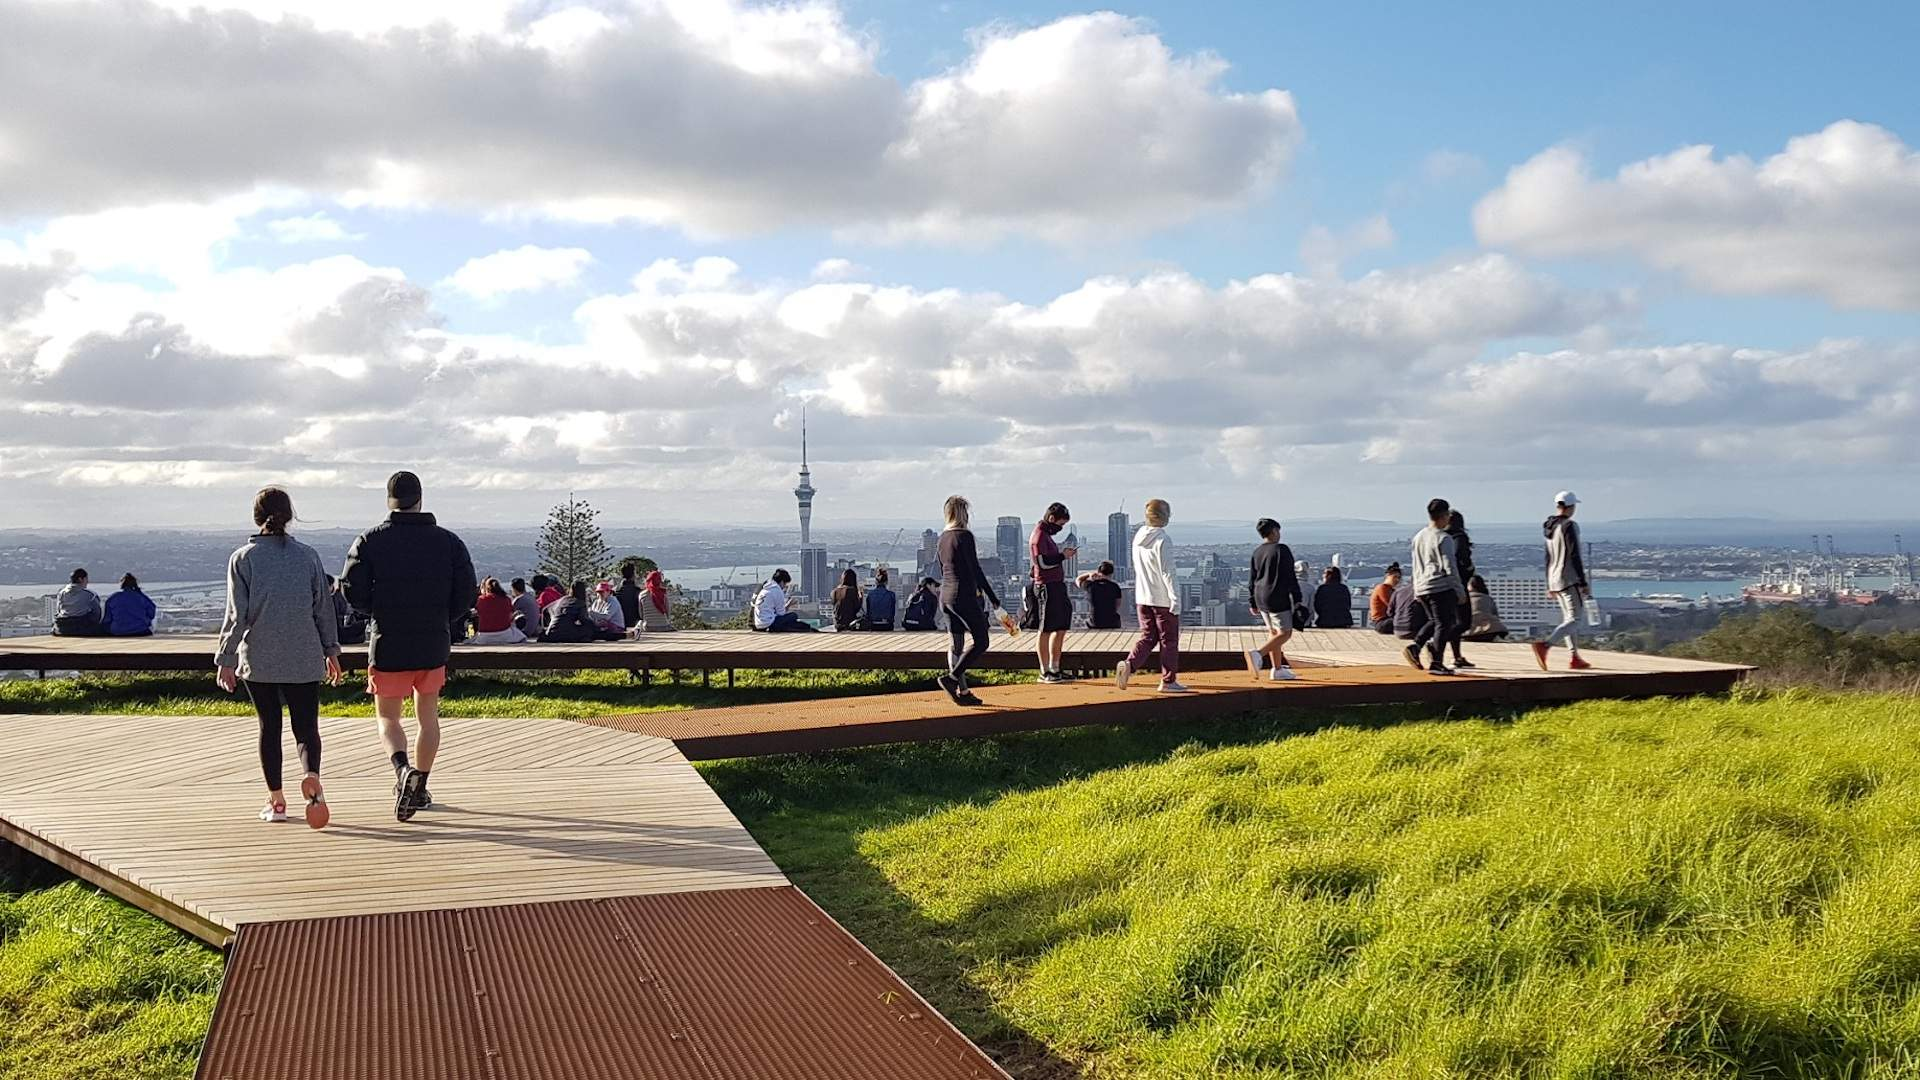 A New Visitor Boardwalk and Viewing Platform Has Opened on Maungawhau/Mount Eden